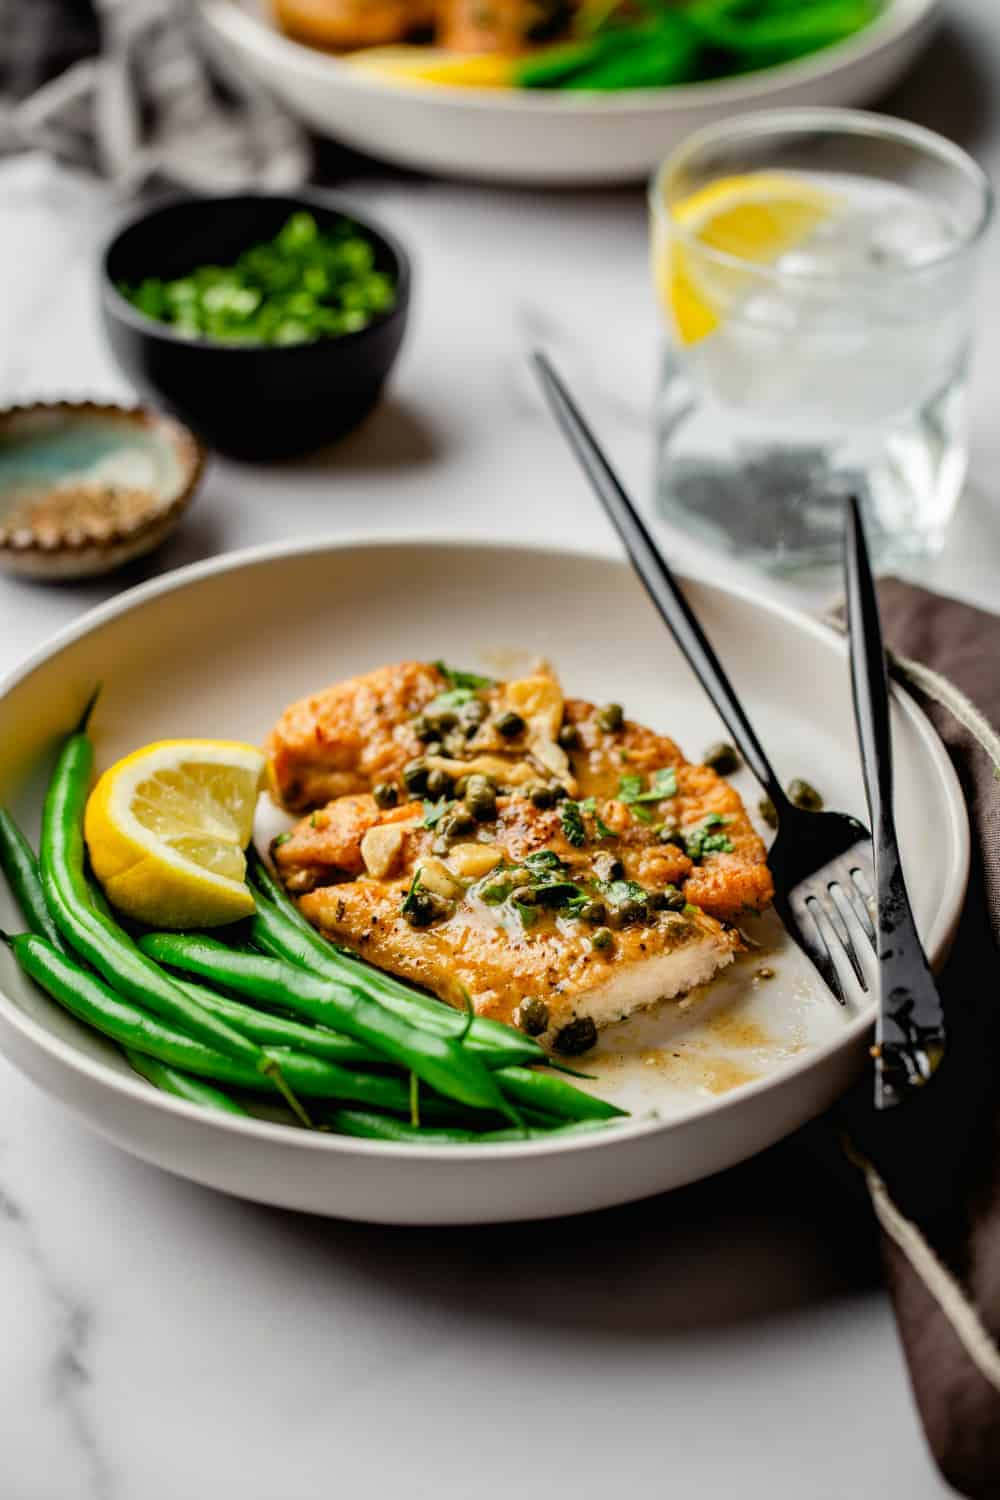 Chicken Piccata on a plate served with green beans and a lemon wedge with a black fork and knife.